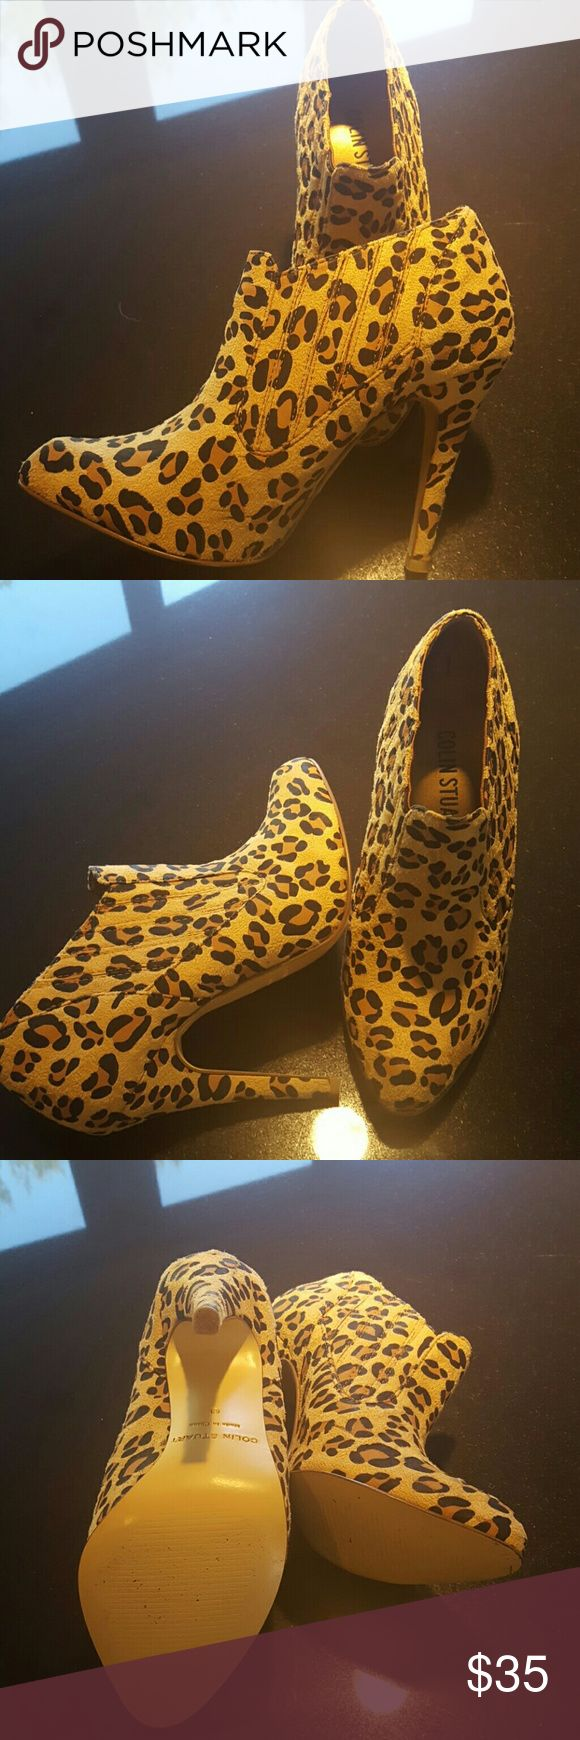 Colin Stuart Leopard Print Ankle Boots Gorgeous Colin Stuart Leopard Print Ankle Boots with about a 4 1/2 inch heel...slip on with stretch on both sides for easy on easy off..worn once. Colin Stuart  Shoes Ankle Boots & Booties